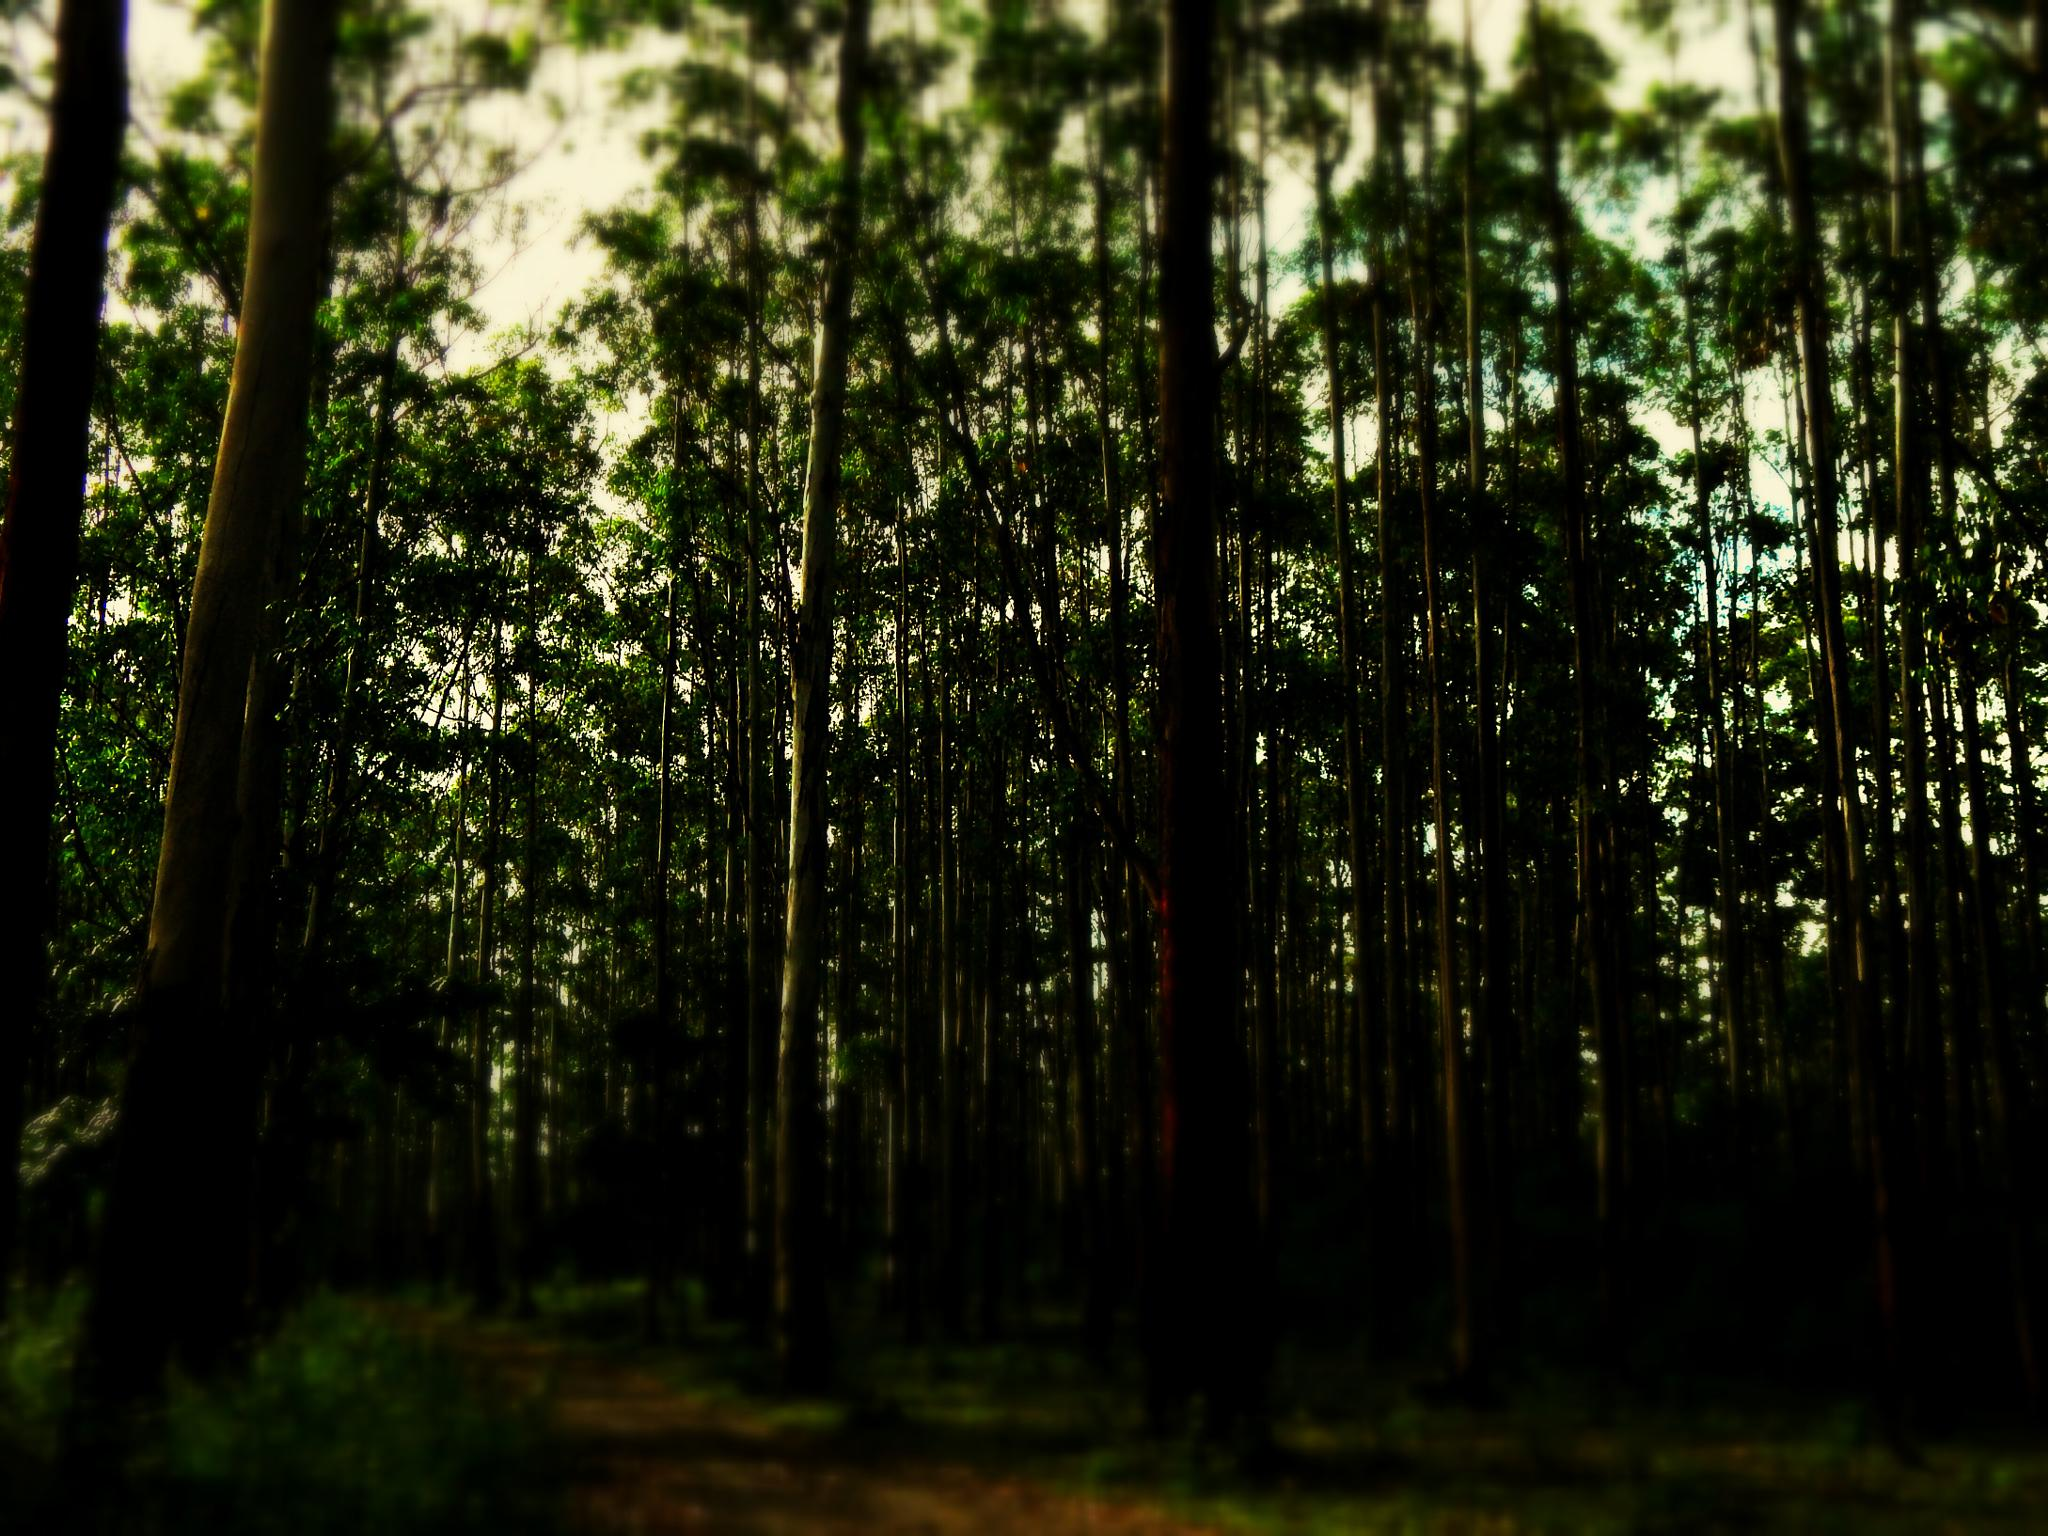 forest by Aritra ghosh